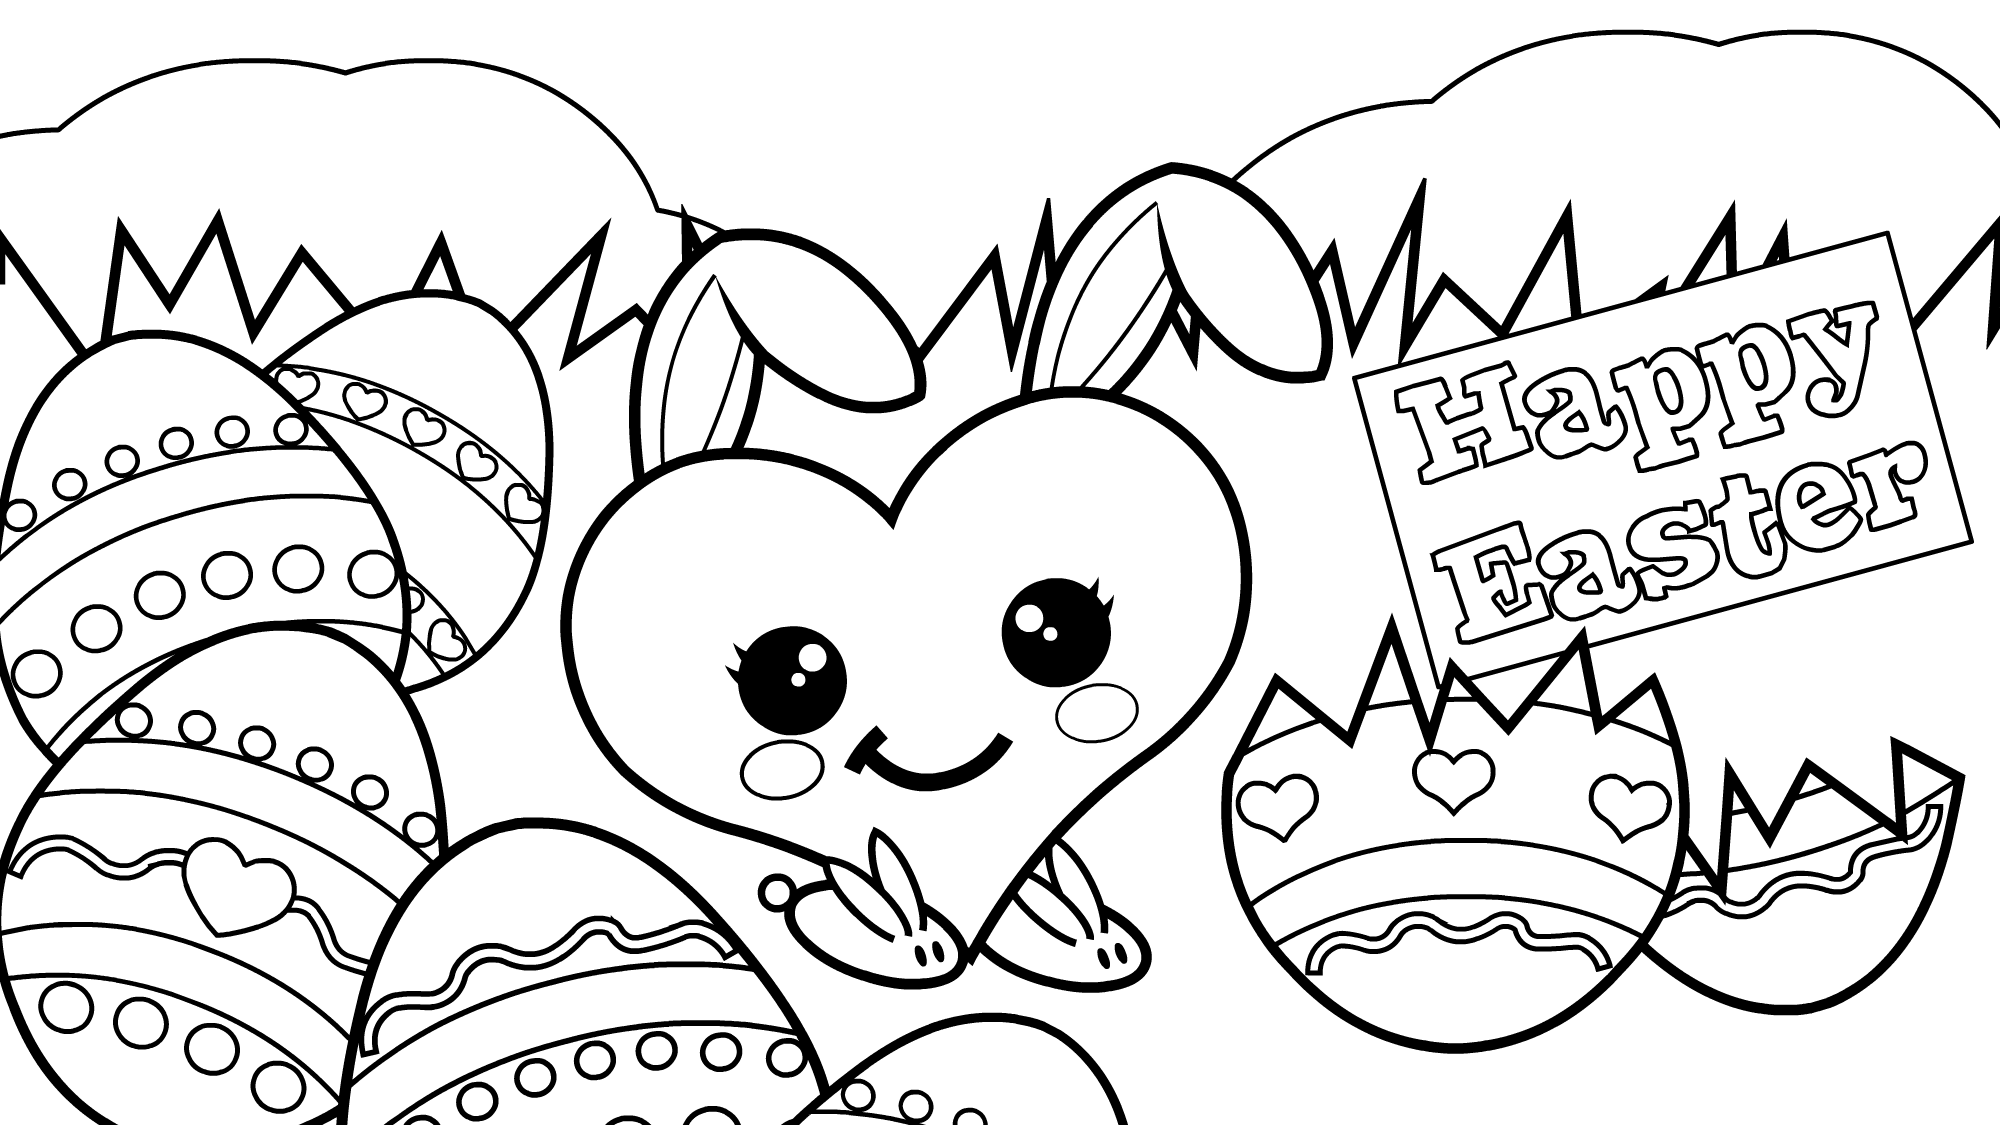 Easter Egg Coloring Pages Crayola Best Coloring Pages Bunny Coloring Pages Easter Coloring Pages Easter Bunny Colouring